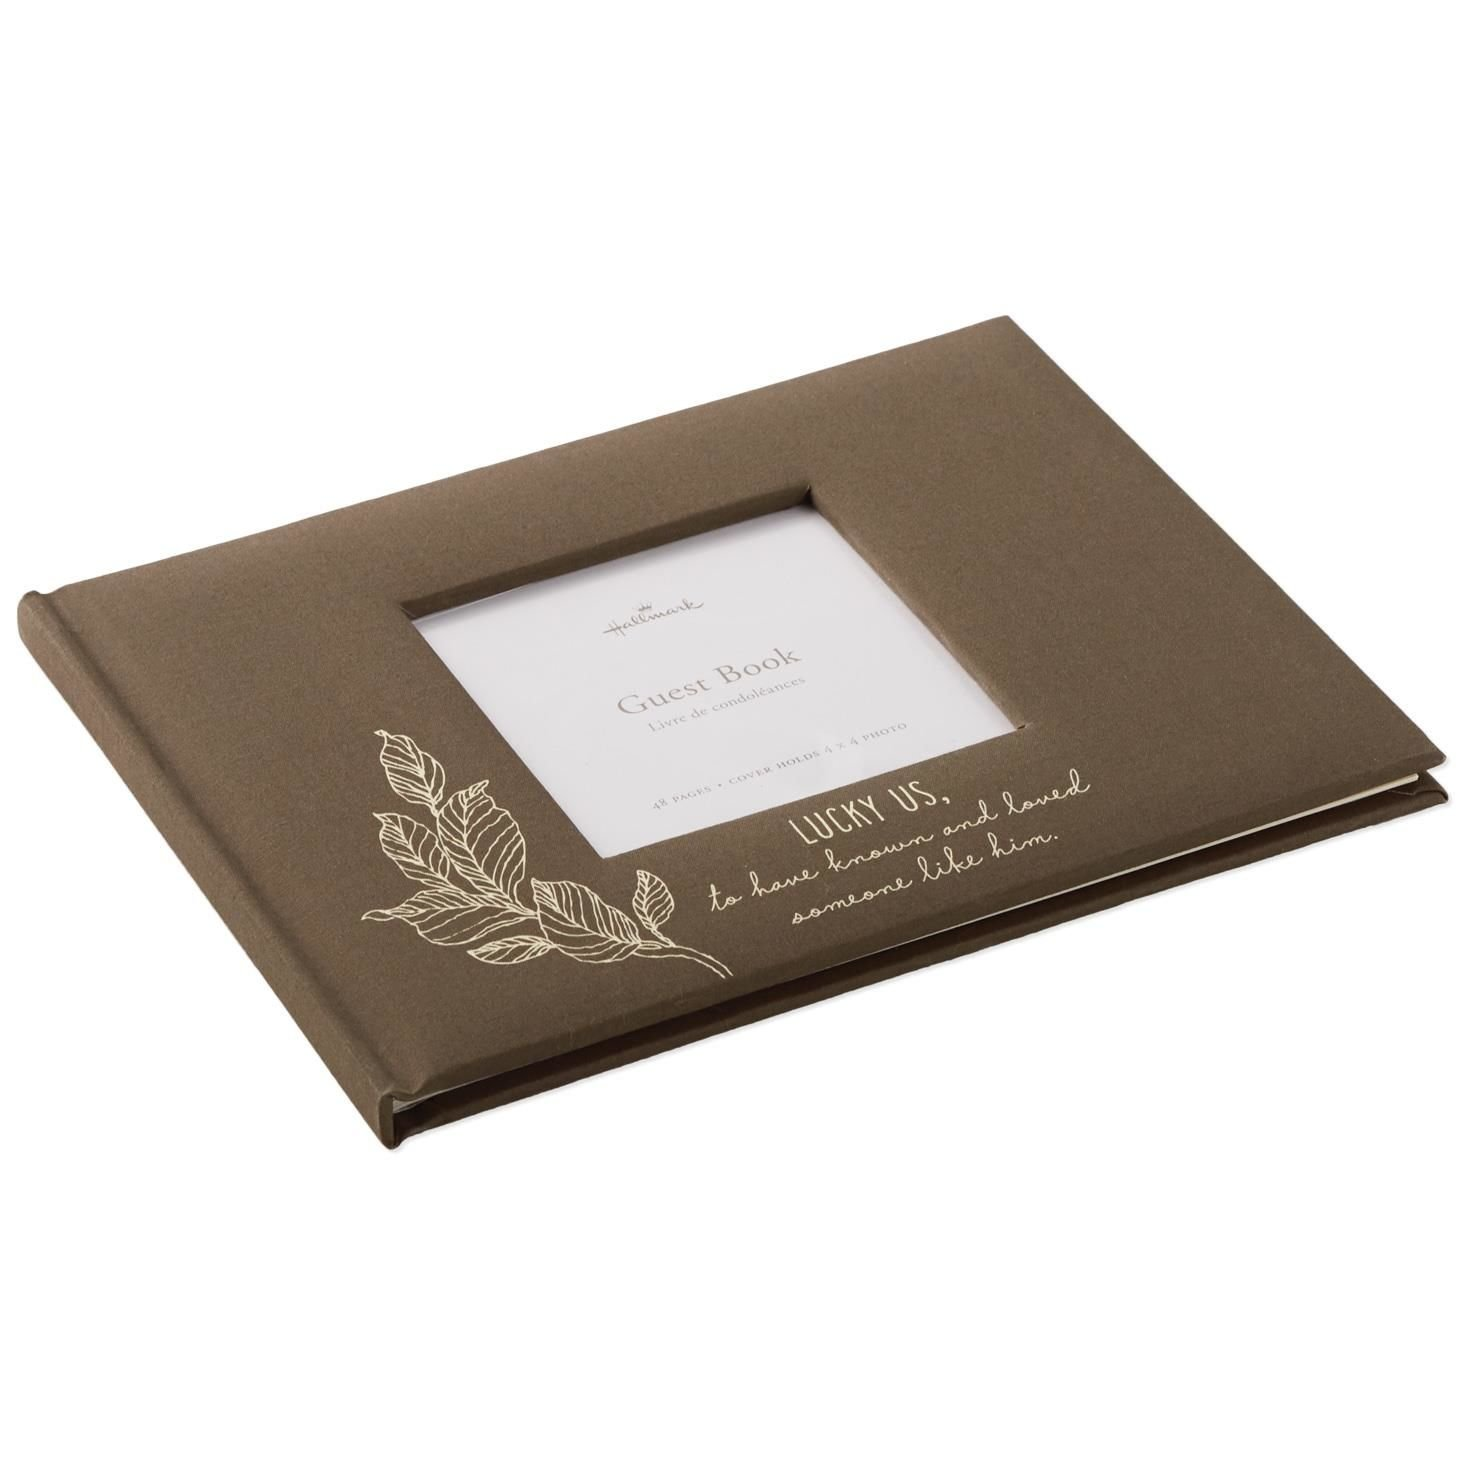 Hallmark Someone Like Him Memorial Guest Book